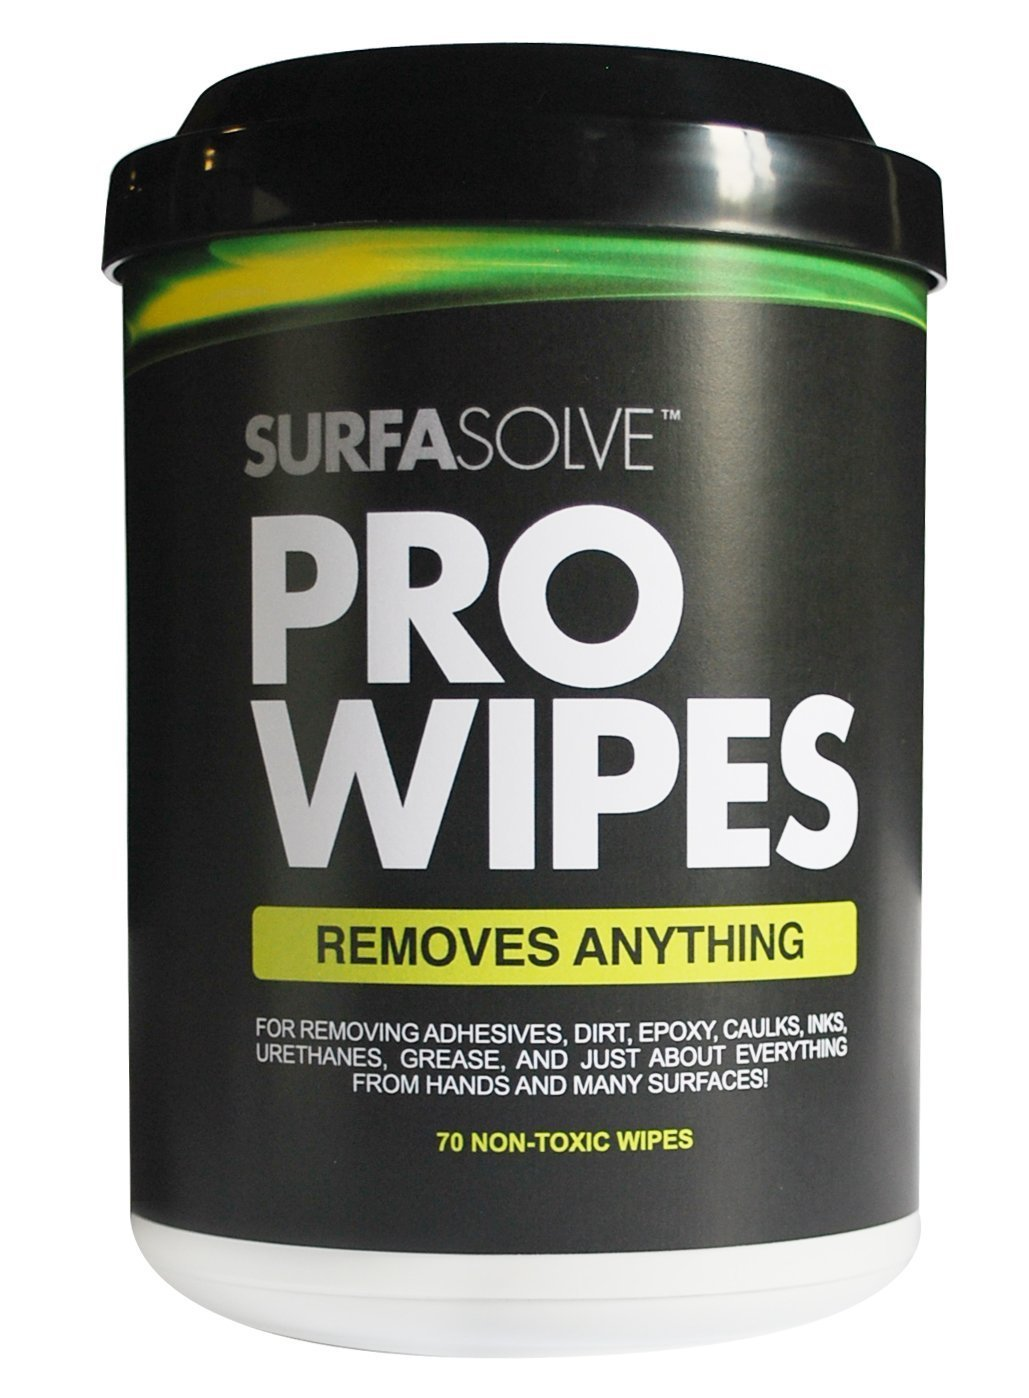 SURFASOLVE PRO WIPES - Case (6 Canisters of 70 Pre-Moistened Wipes)